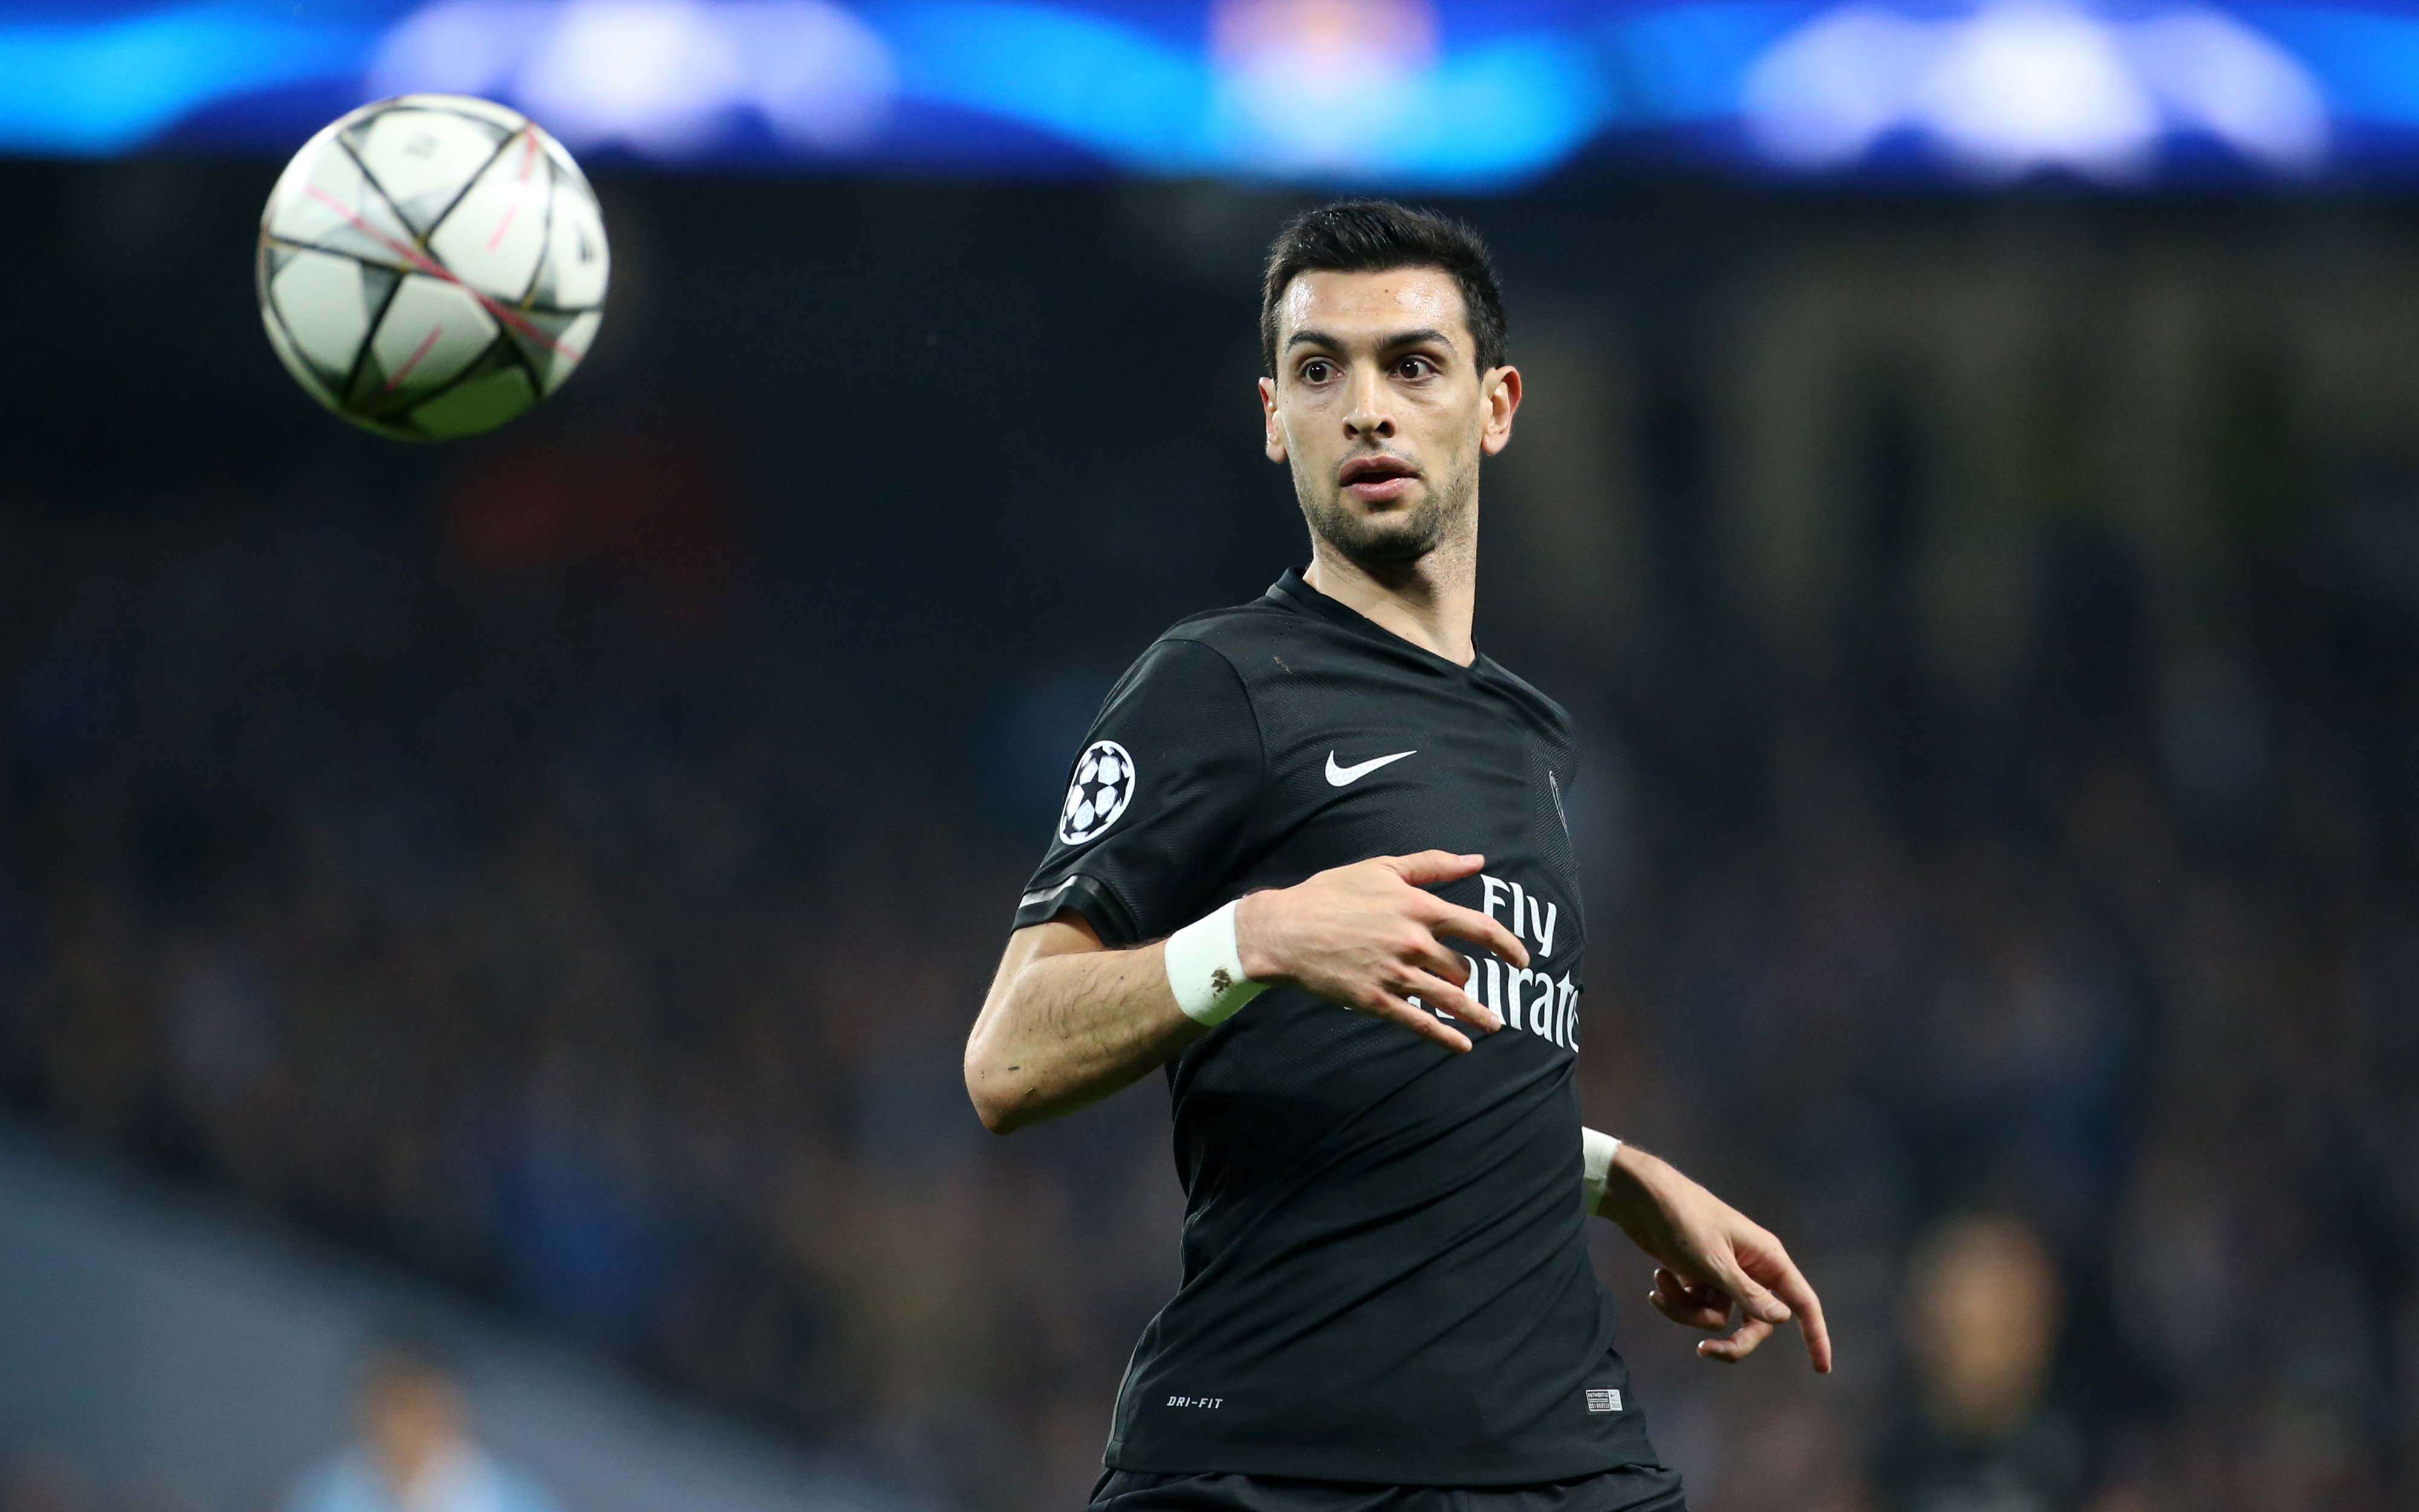 Rumour: Chelsea make contact with PSG ace Javier Pastore over transfer